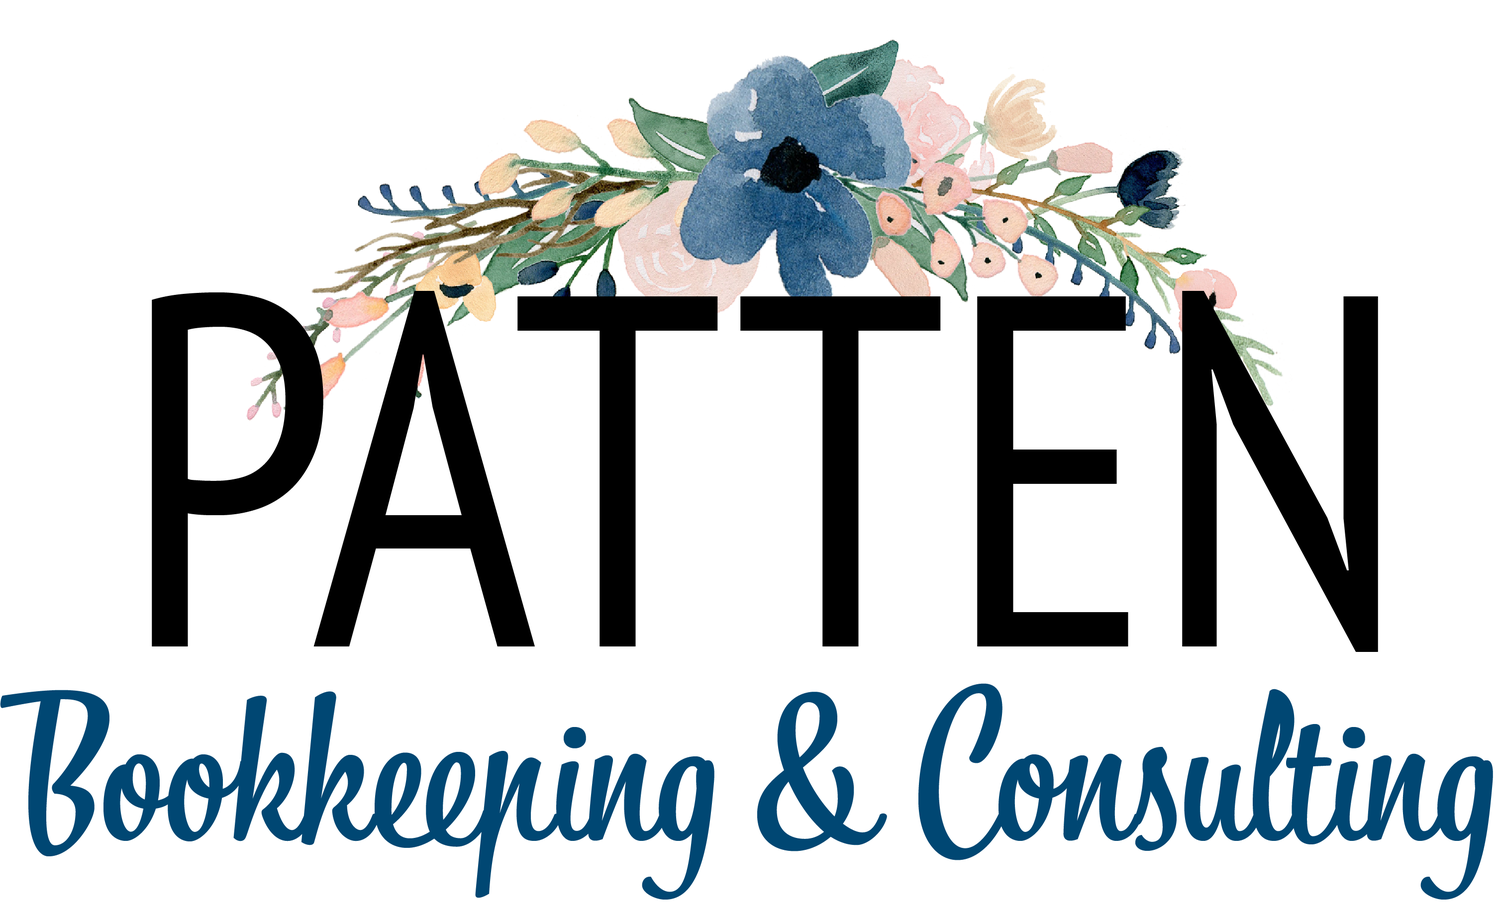 Patten Bookkeeping & Consulting